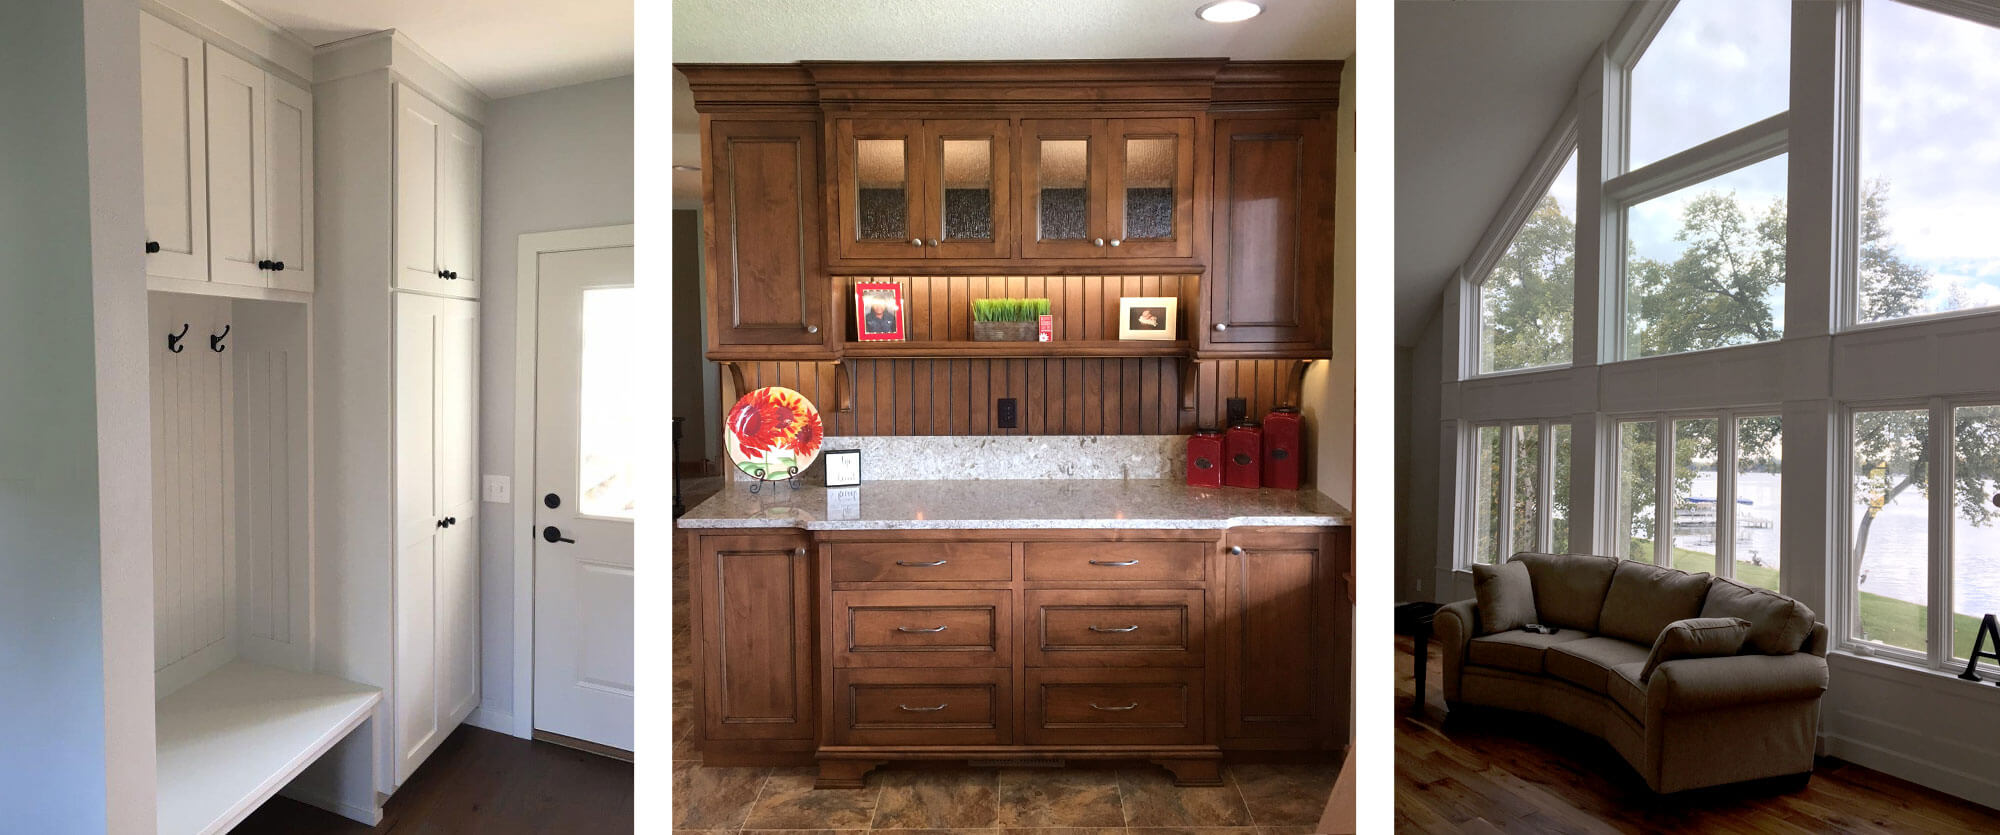 Grouping of three custom woodwork peices designed, built, and installed by finewood Structures of Browerville, MN | A white floor to ceiling entryway cabinet and lockers; an Alder floor to ceiling china hutch; and floor to ceiling window mouldings